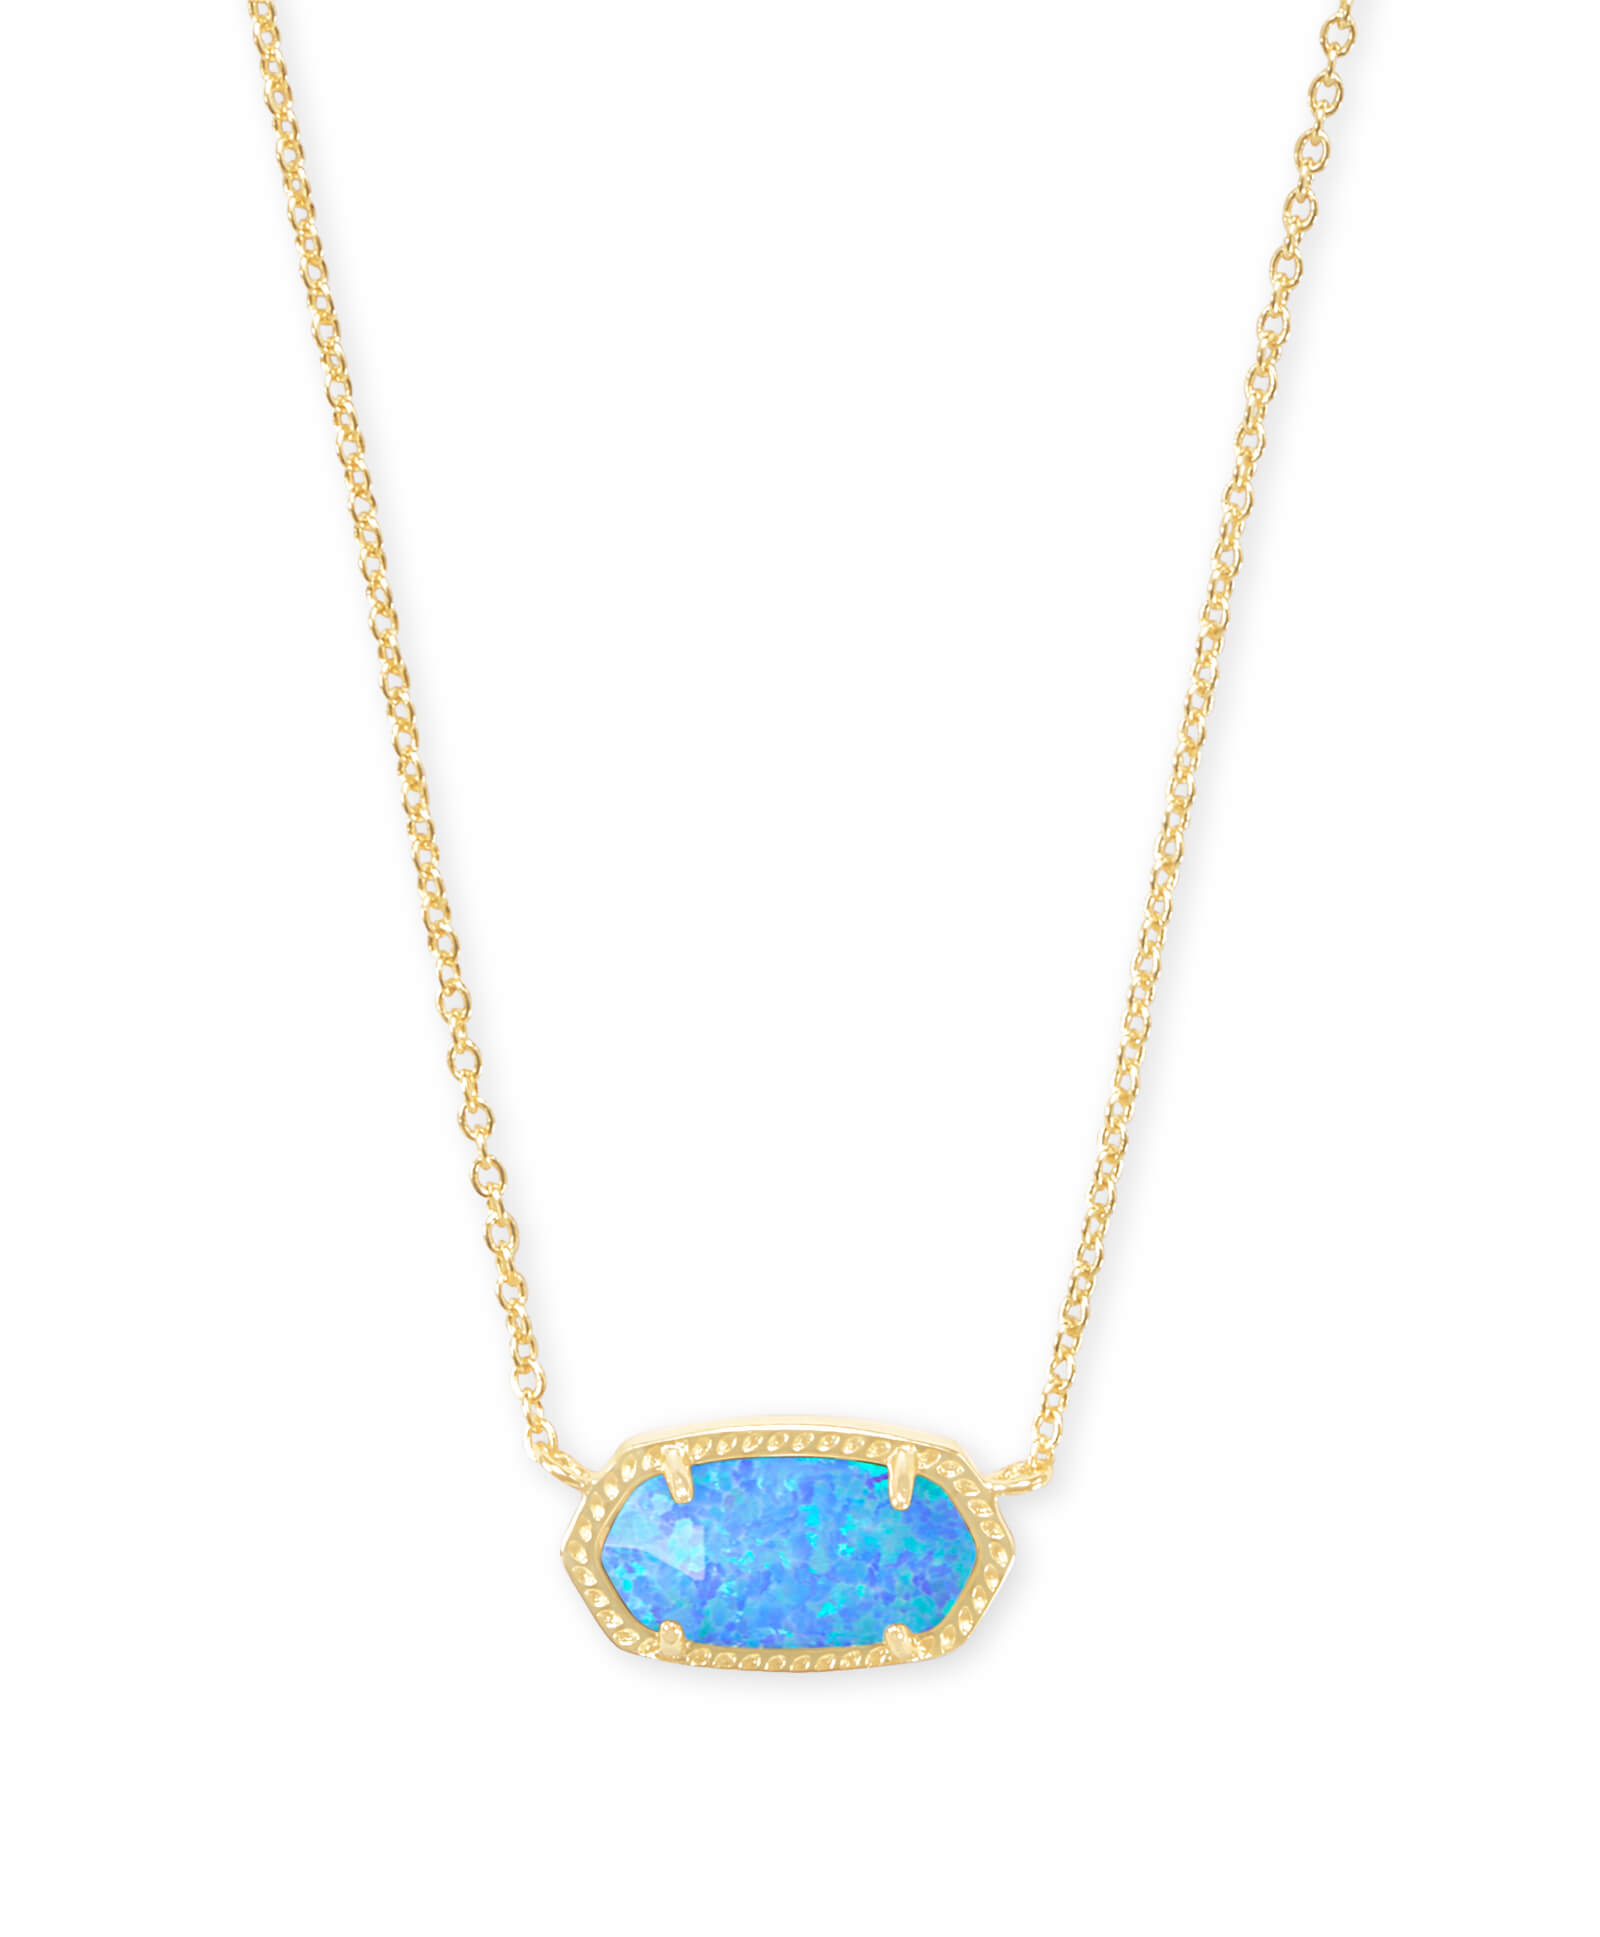 Elisa Gold Pendant Necklace in Ocean Kyocera Opal